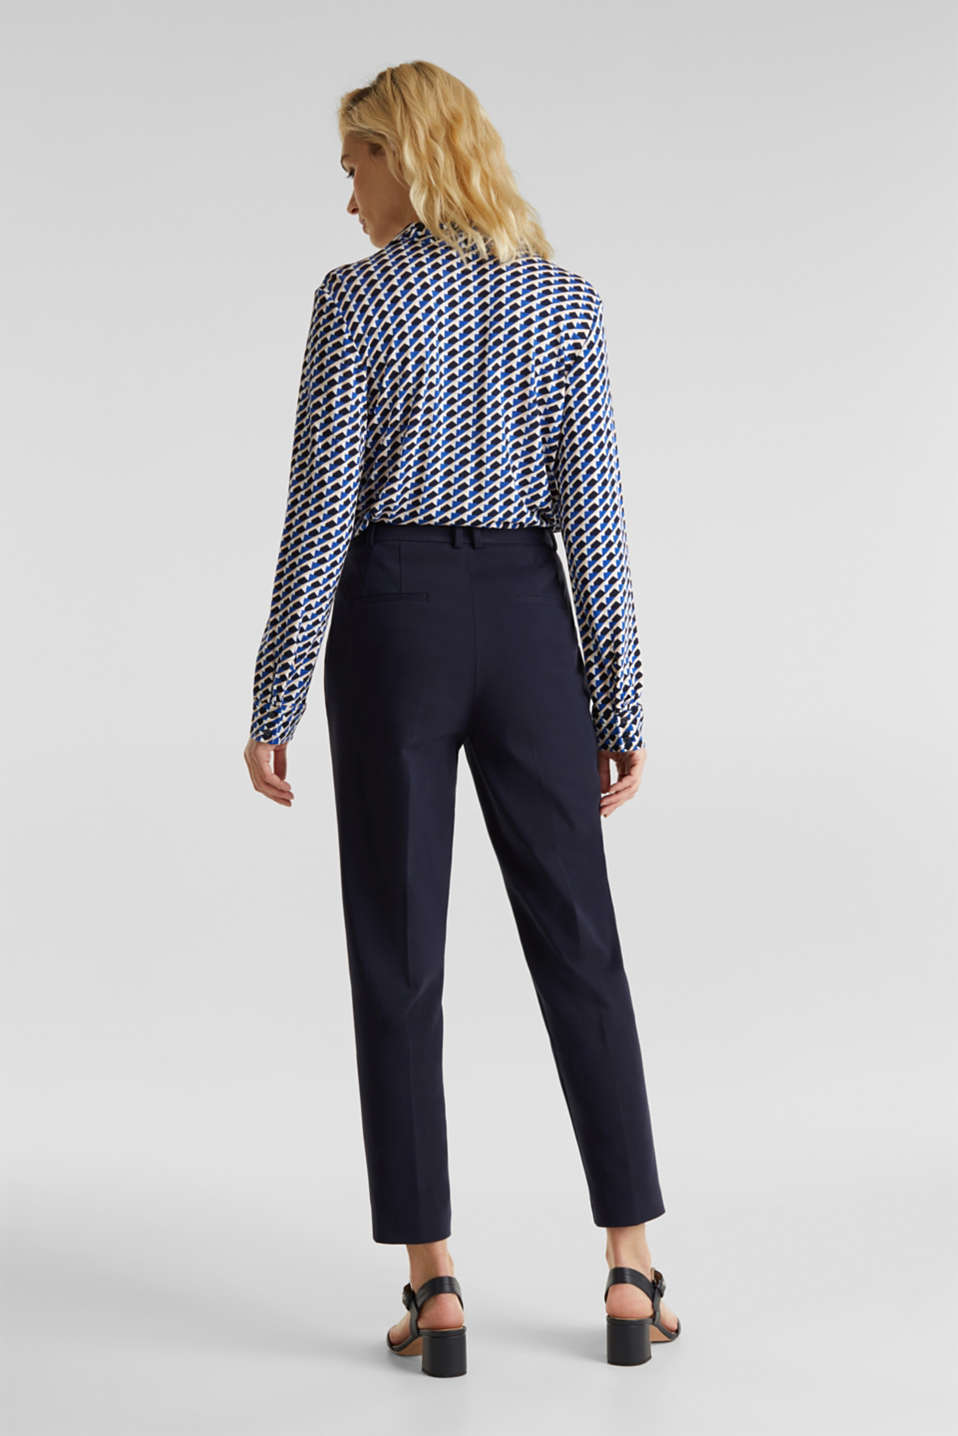 MODERN Mix + Match trousers with a high-rise waist, NAVY, detail image number 3